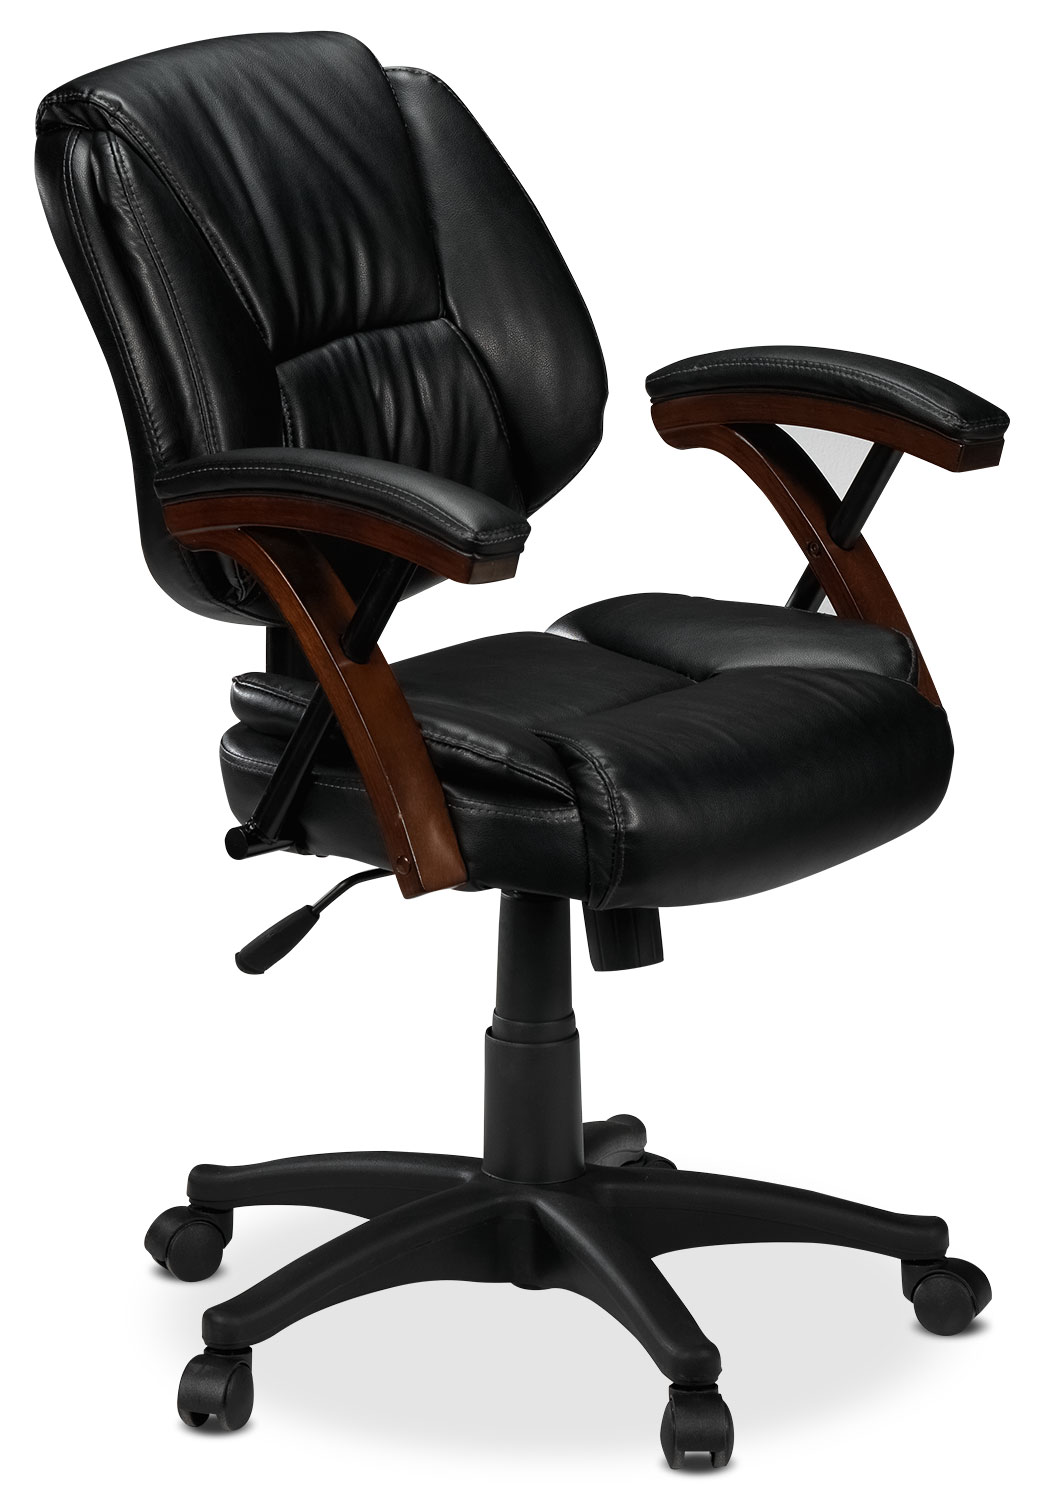 Home Office Furniture - Zeta Office Chair